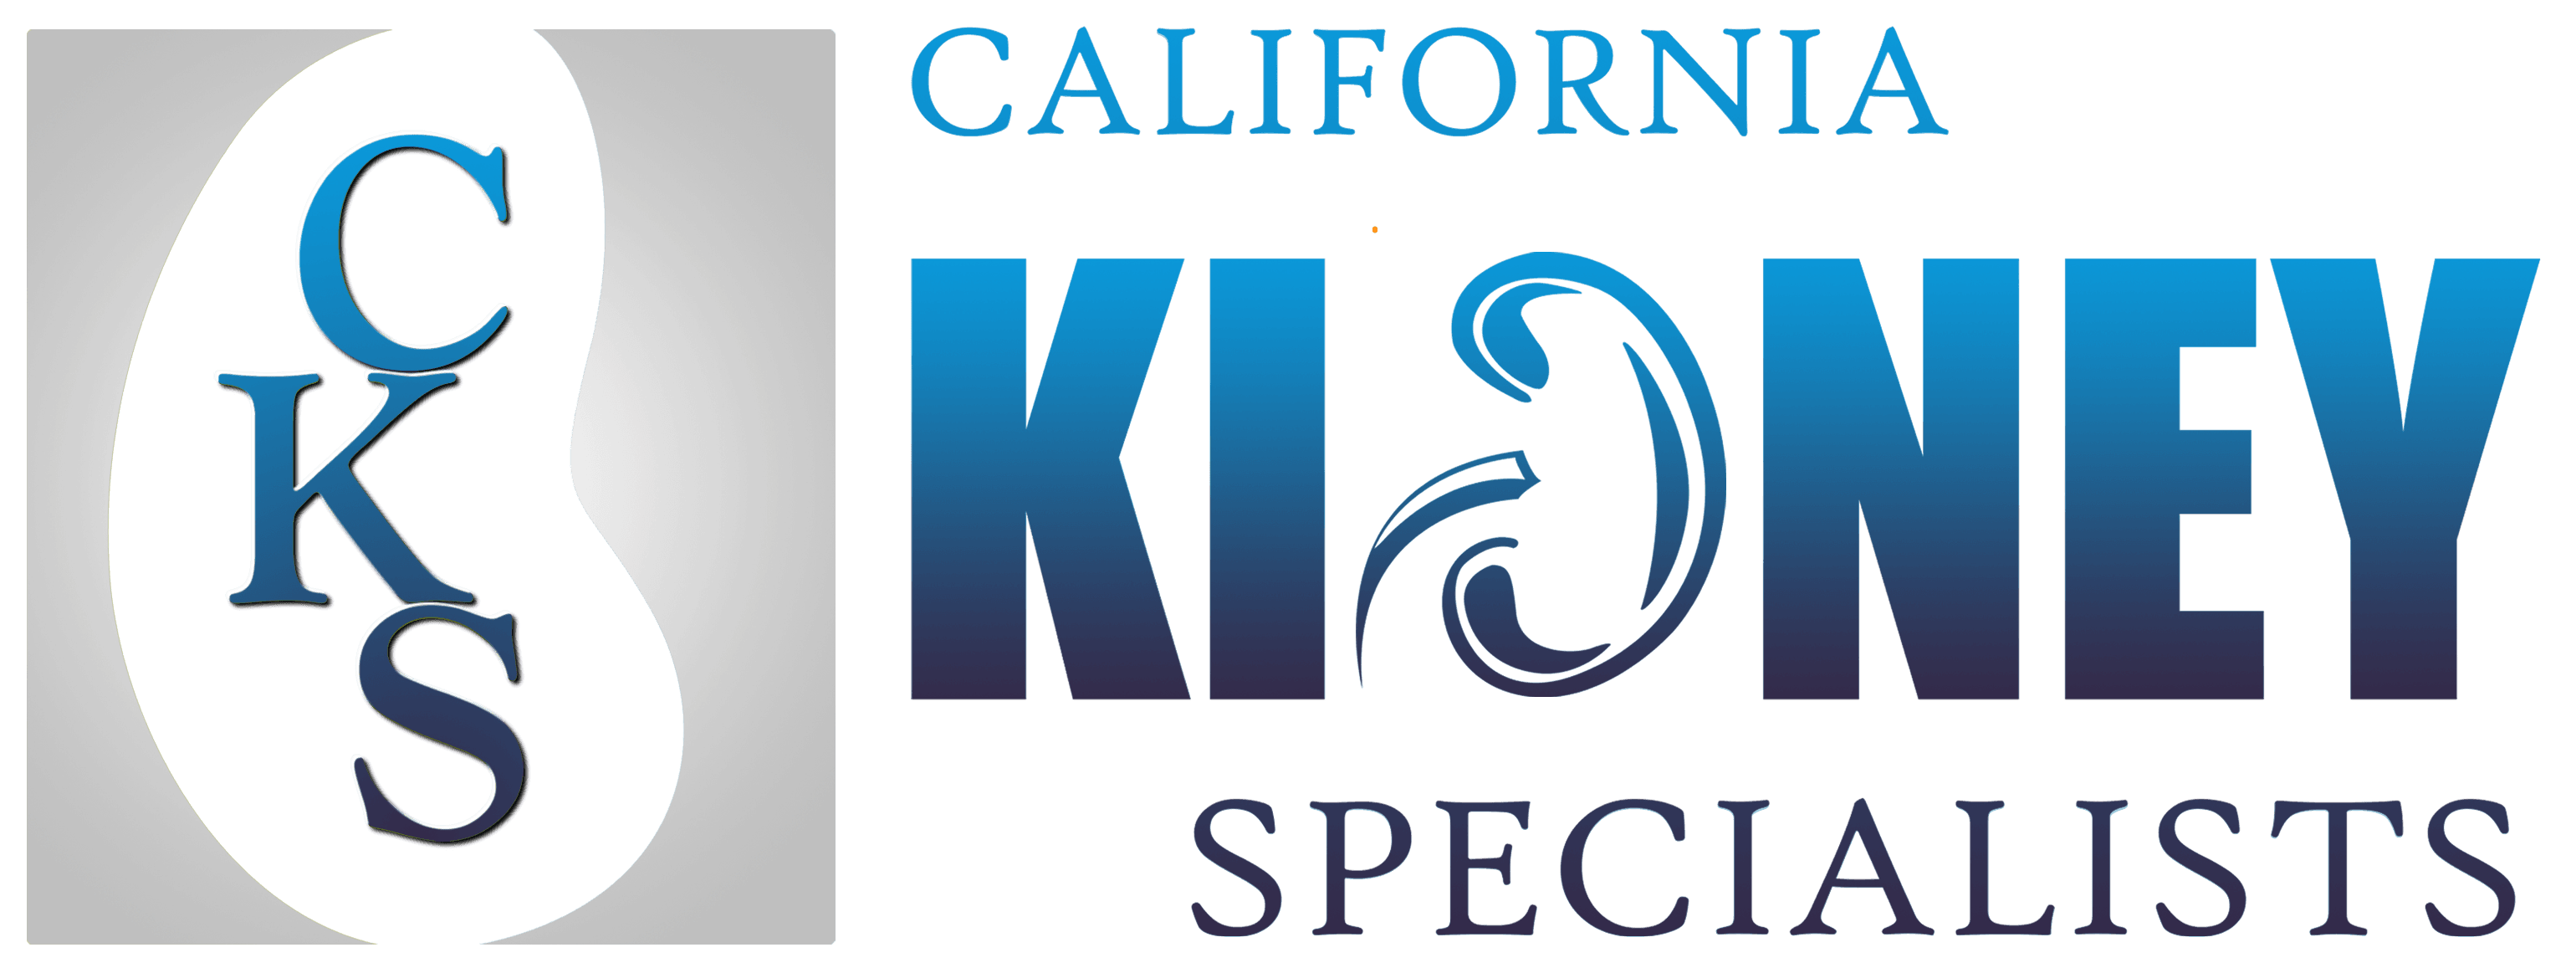 California Kidney Specialists